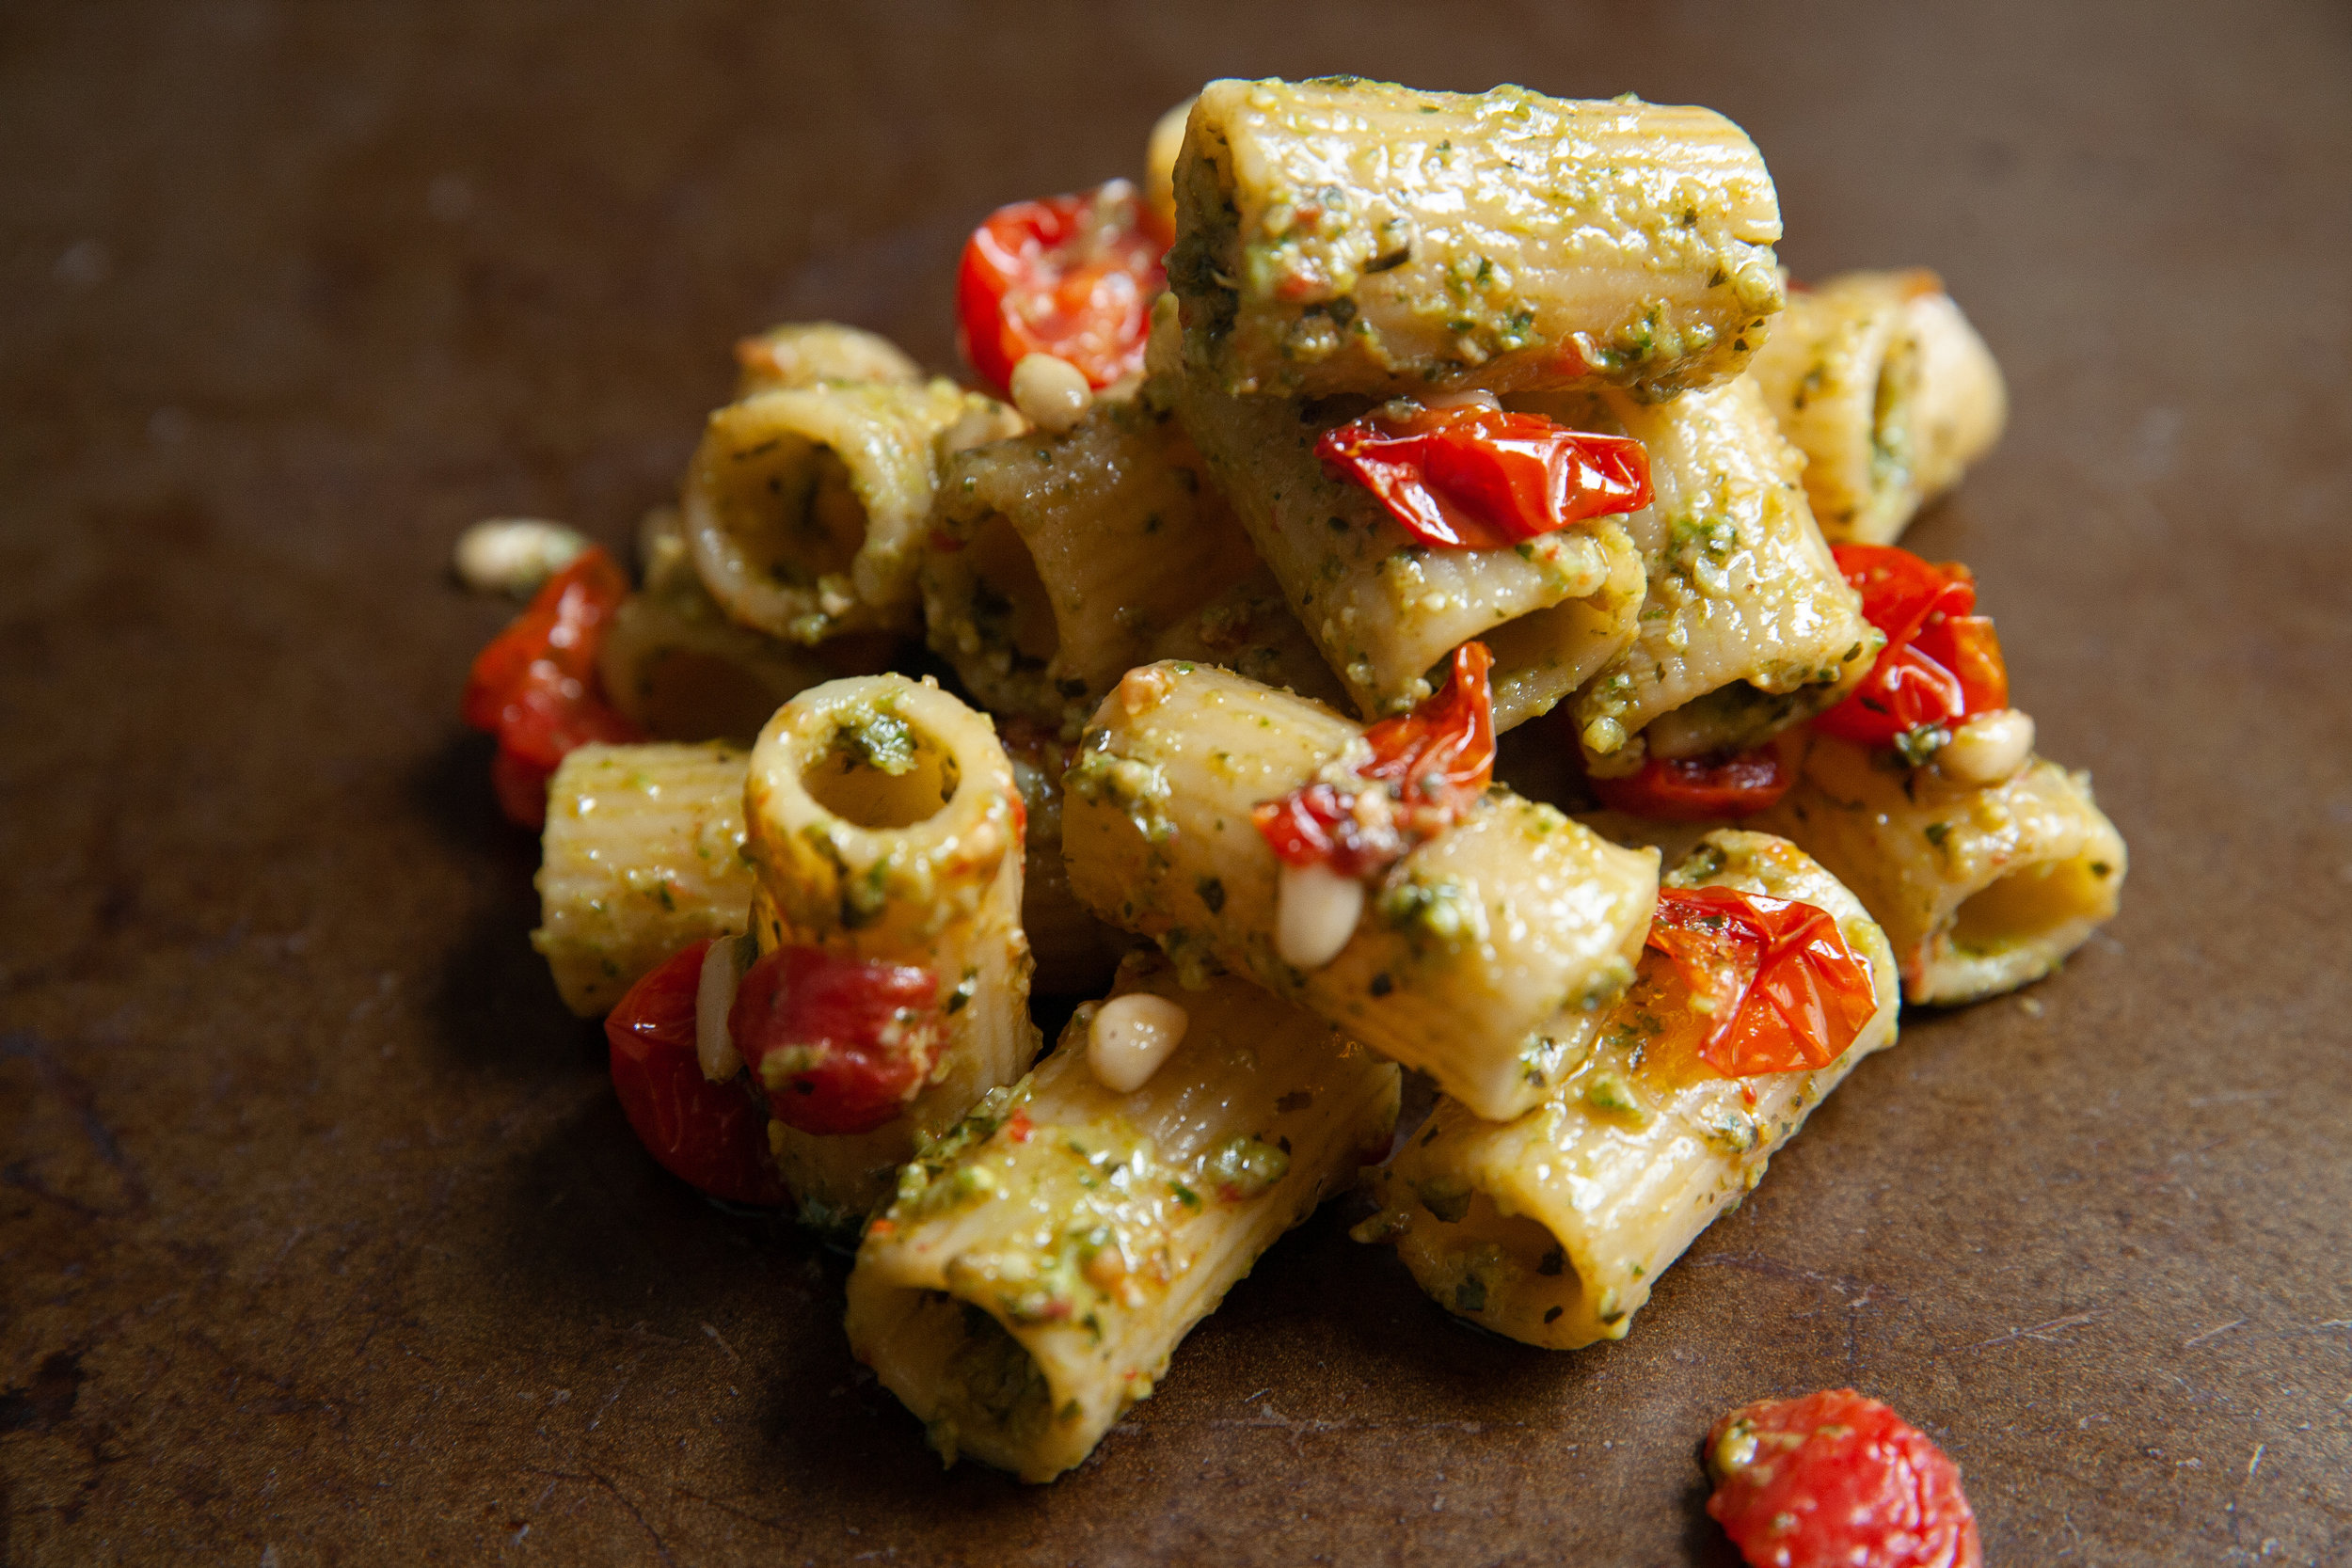 Rigatoni with blistered grape tomatoes, pesto, and pine nuts.